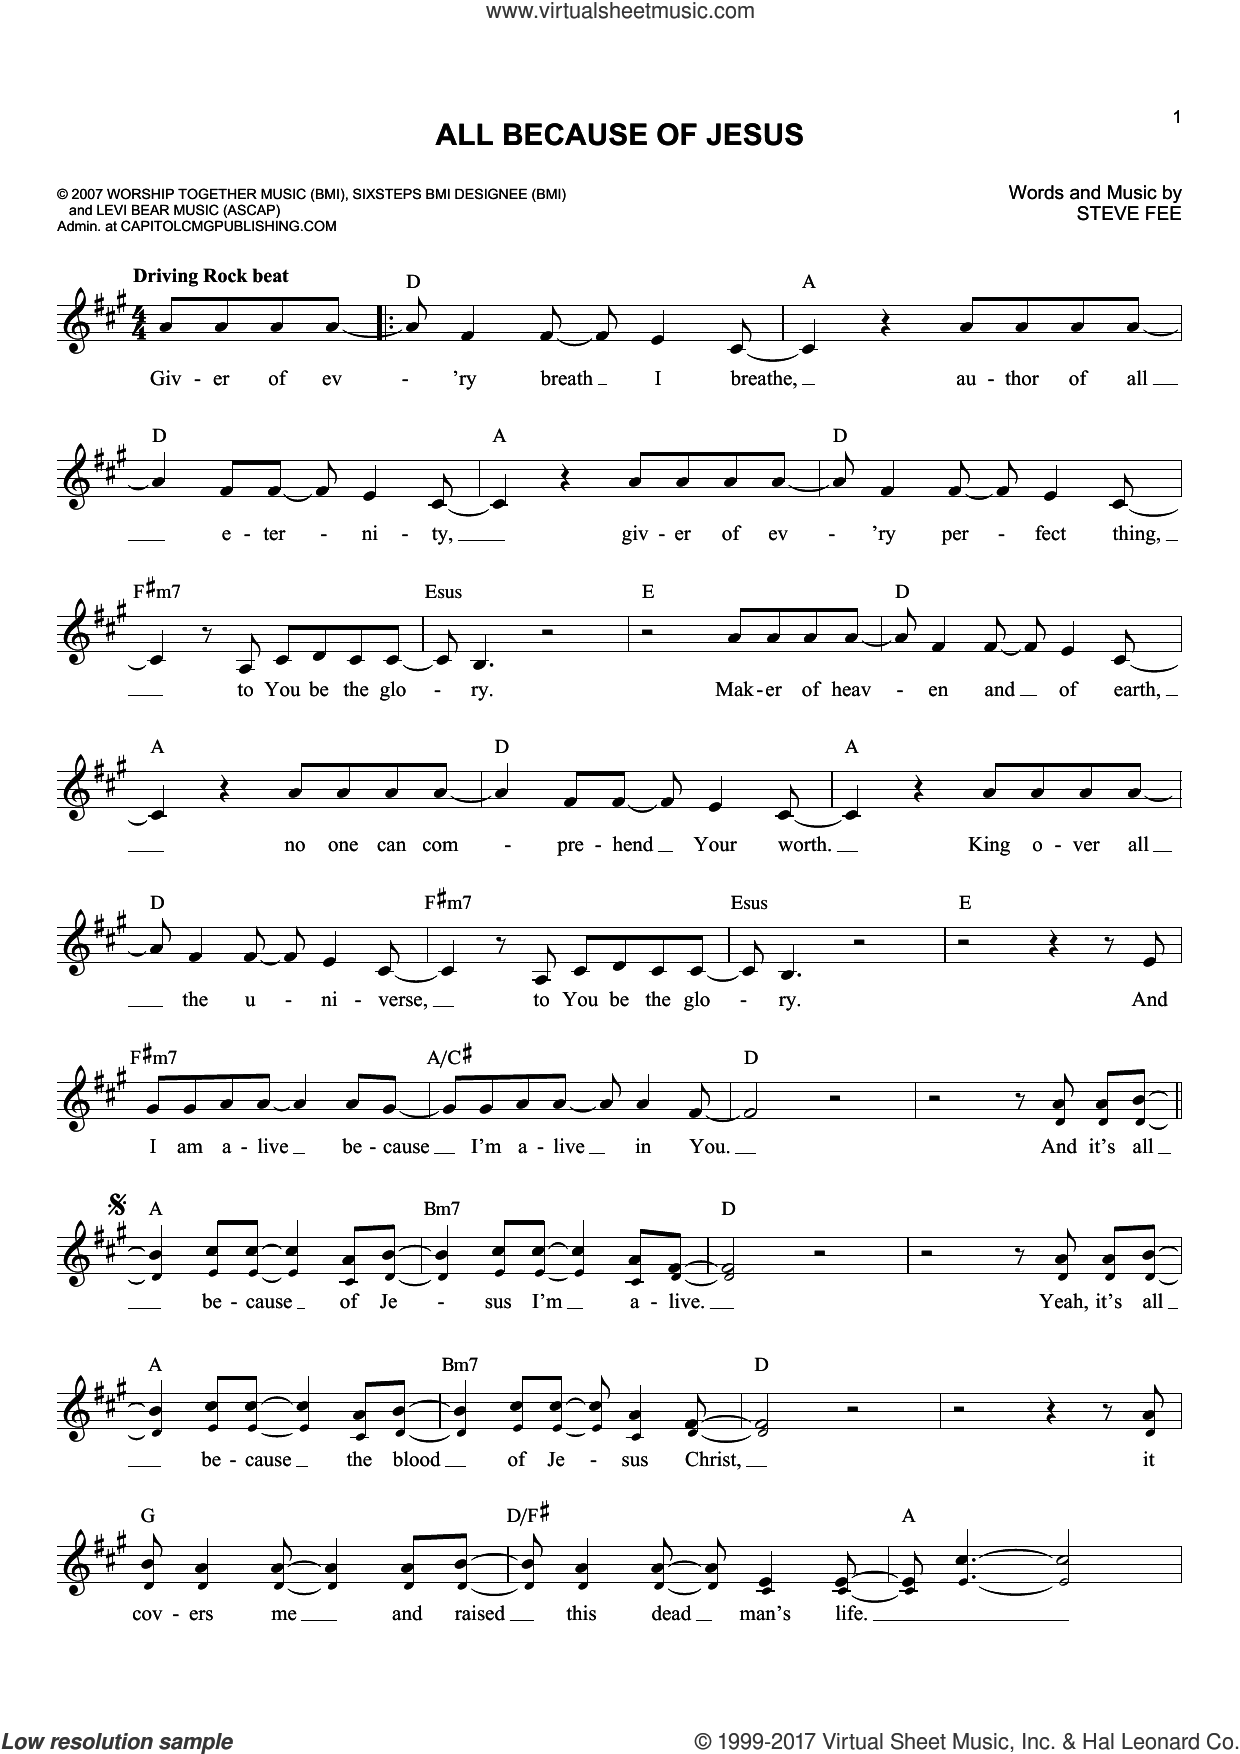 All Because Of Jesus sheet music for voice and other instruments (fake book) by Casting Crowns and Steve Fee, intermediate skill level